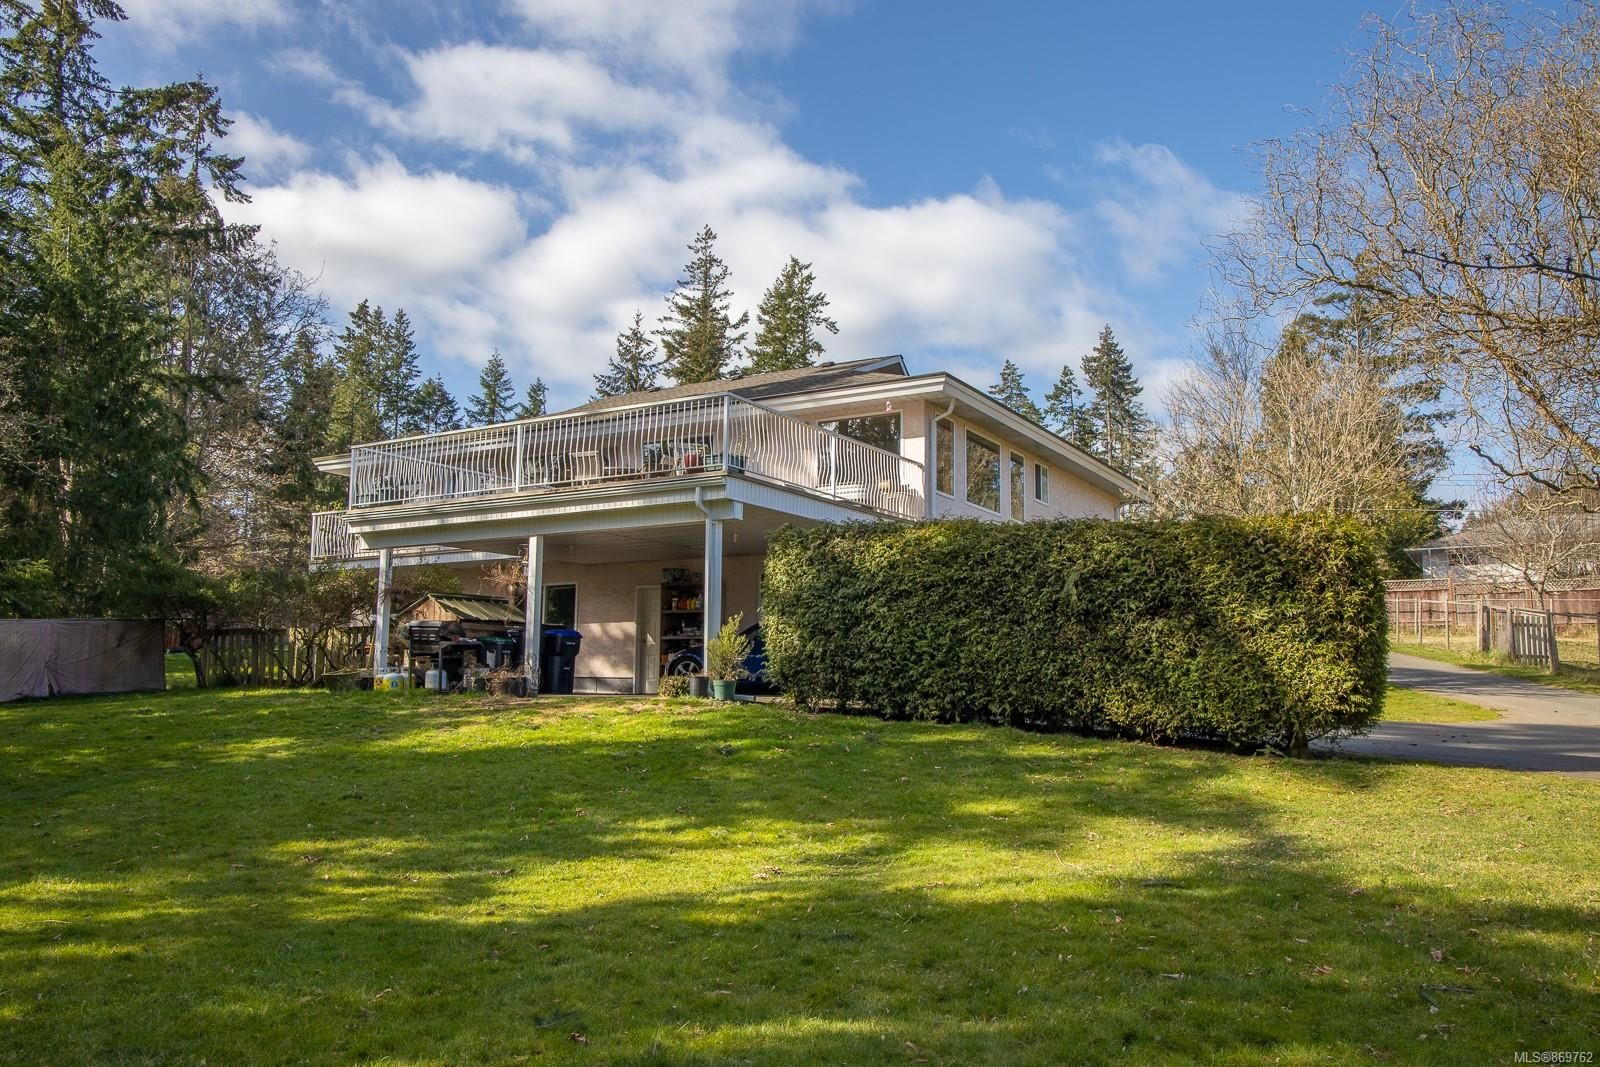 Main Photo: 2630 Kinghorn Rd in : PQ Nanoose House for sale (Parksville/Qualicum)  : MLS®# 869762